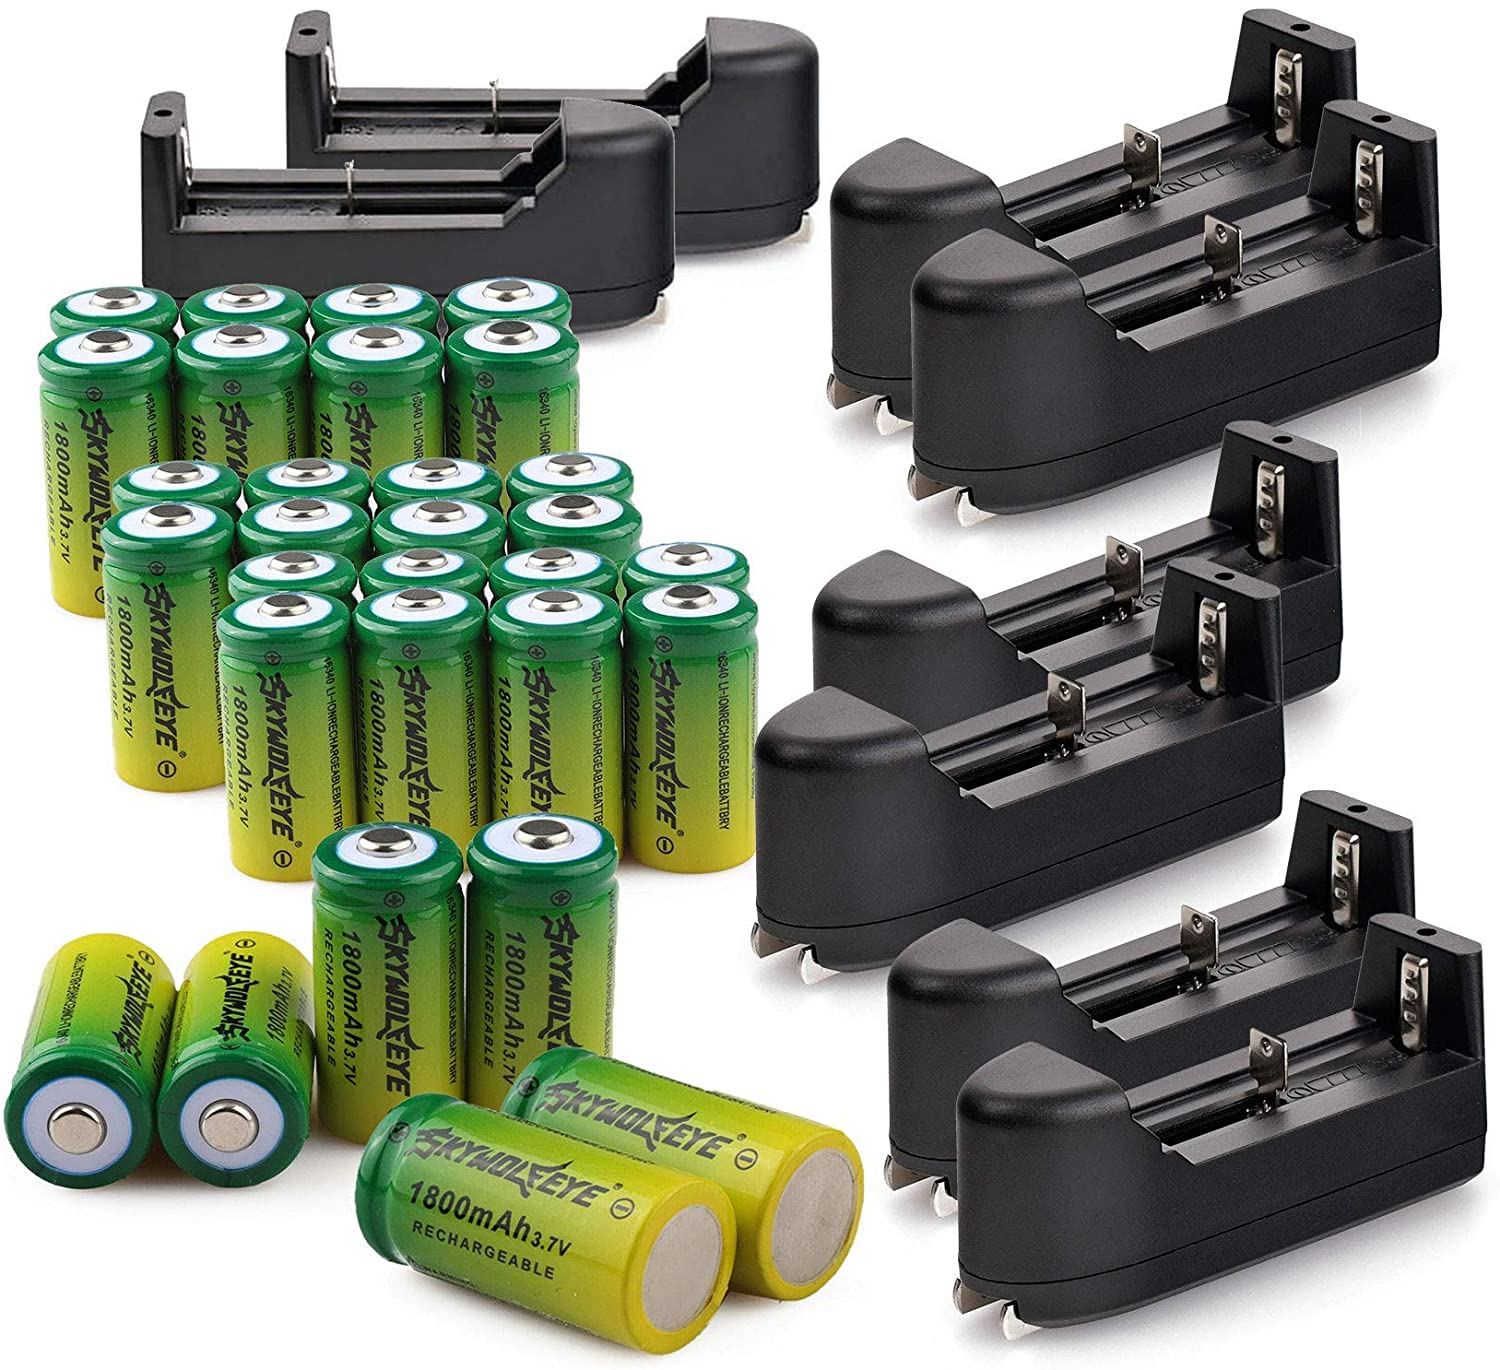 30 PCS 3.7V 1800mAh Li-ion 16#340 Battery CR123A Rechargeable Batteries & 8 PCS Single Slot Universal Rechargeable Charger for Alro or LED Flashlight Torch Headlamp